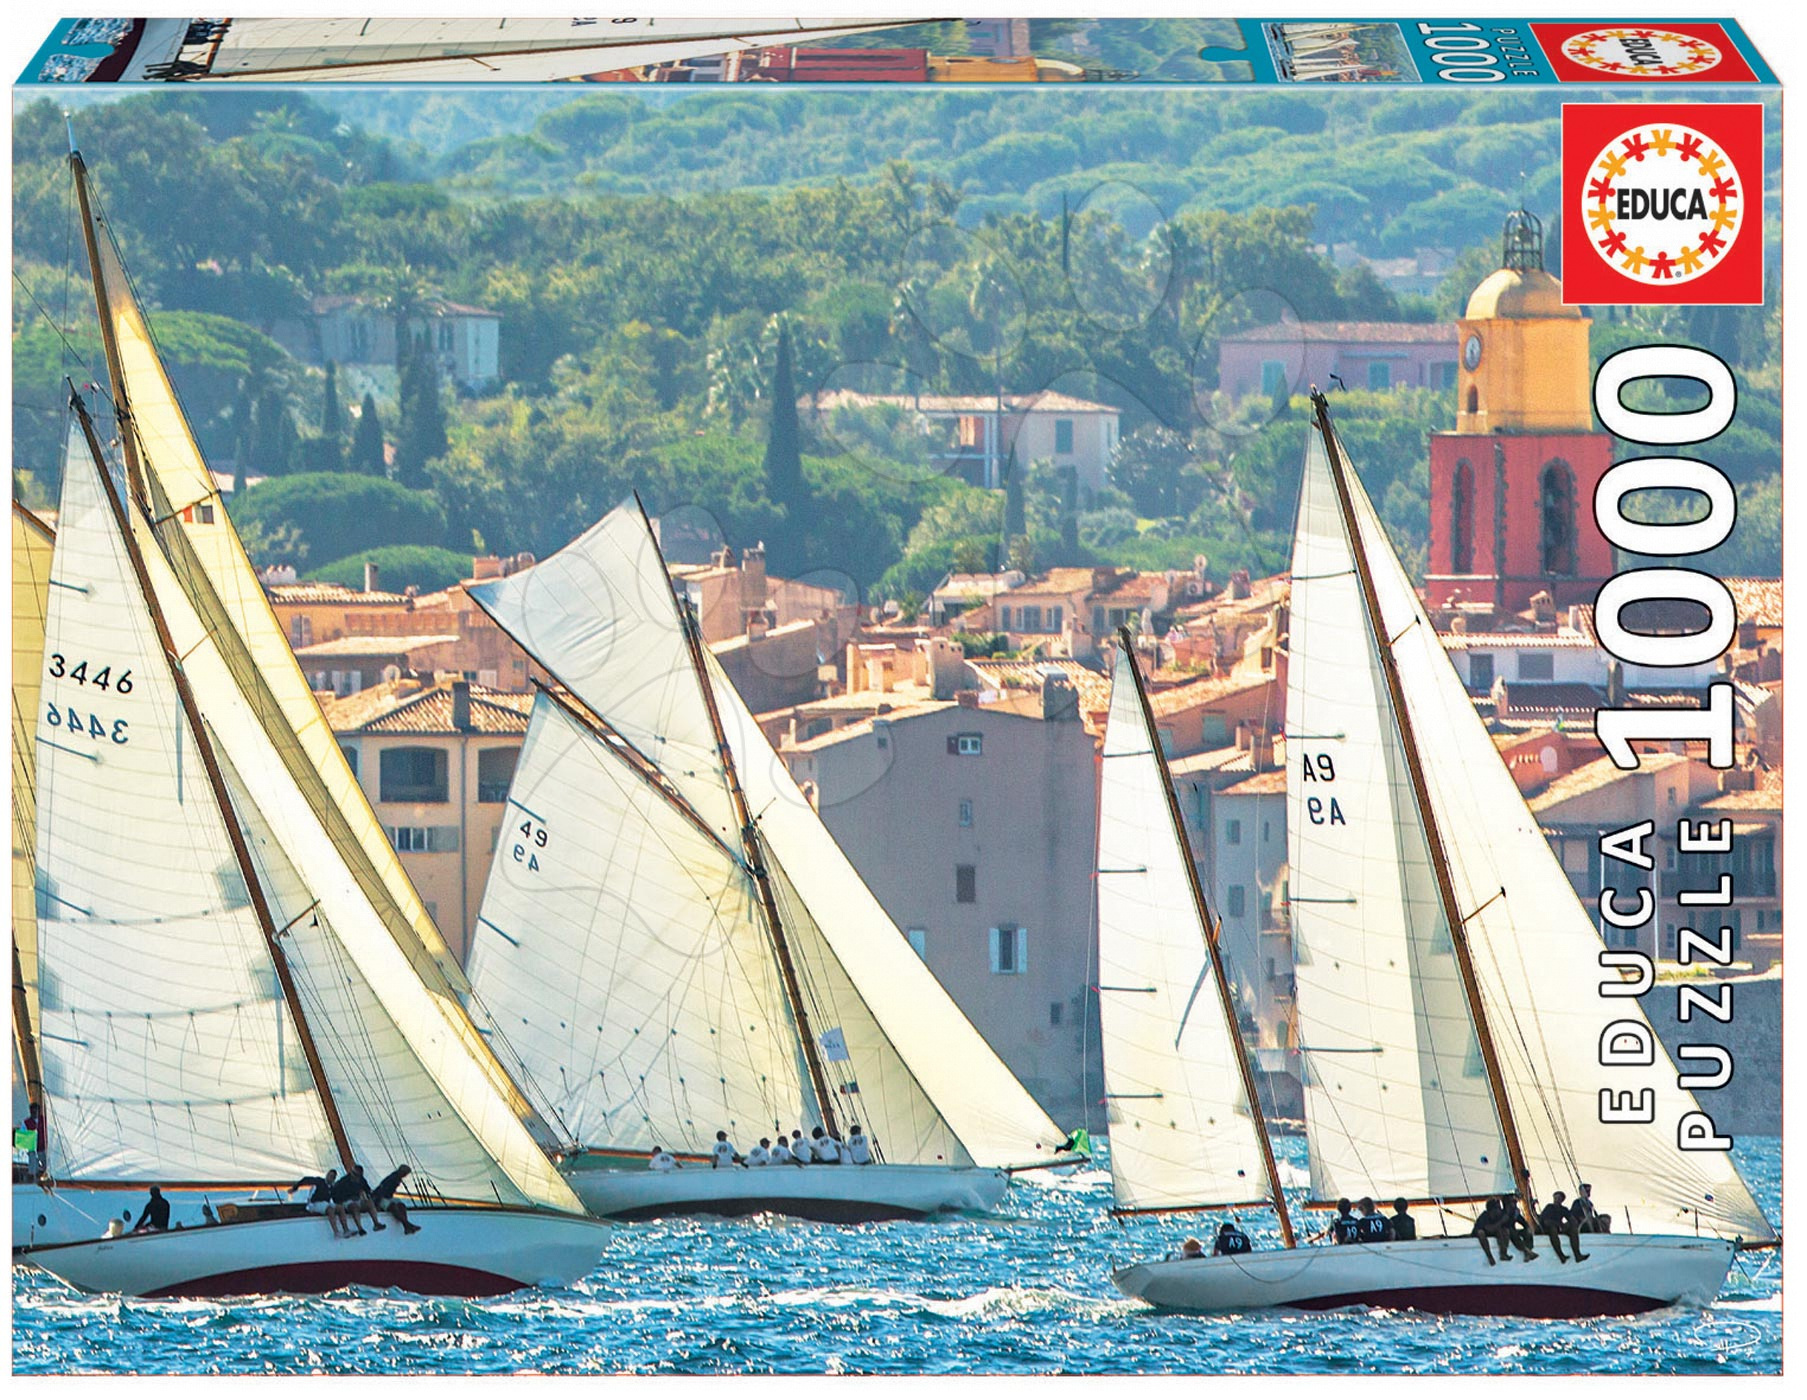 Puzzle Genuine Sailing at Saint-Tropez Educa 1000 dílů od 12 let